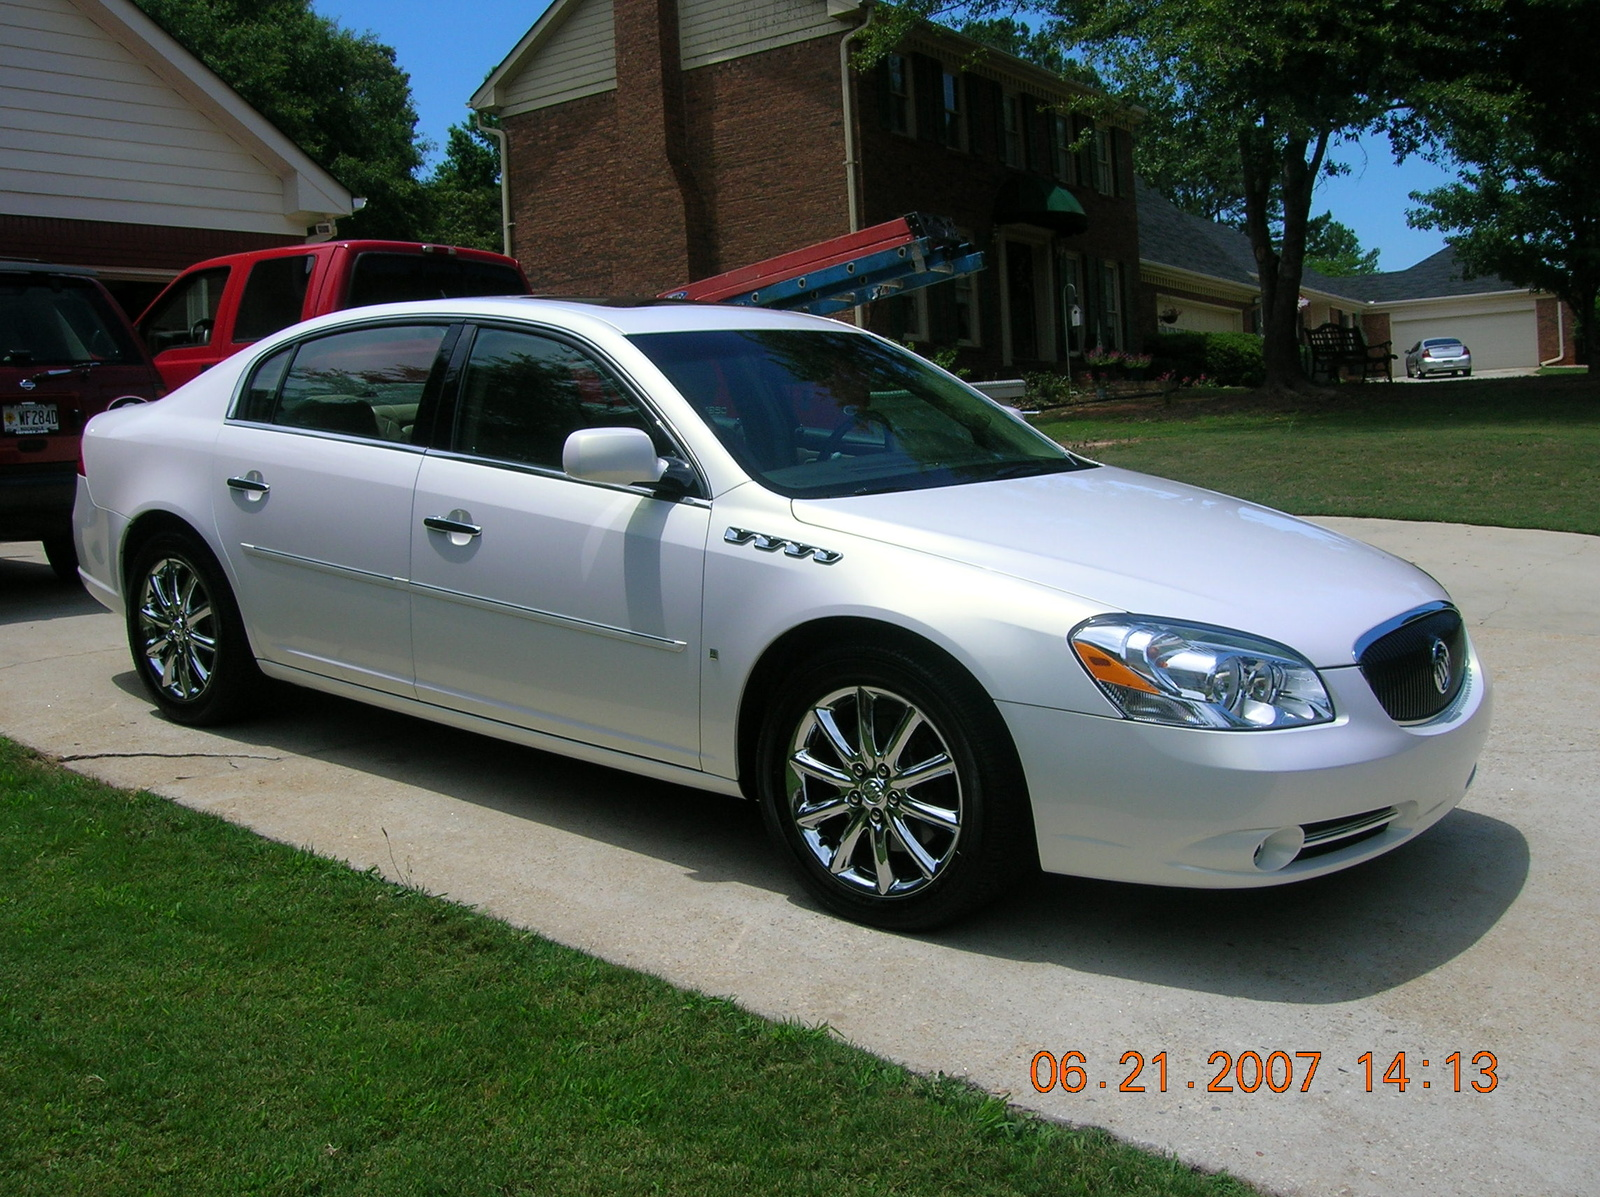 Picture of 2007 Buick Lucerne CXL V8